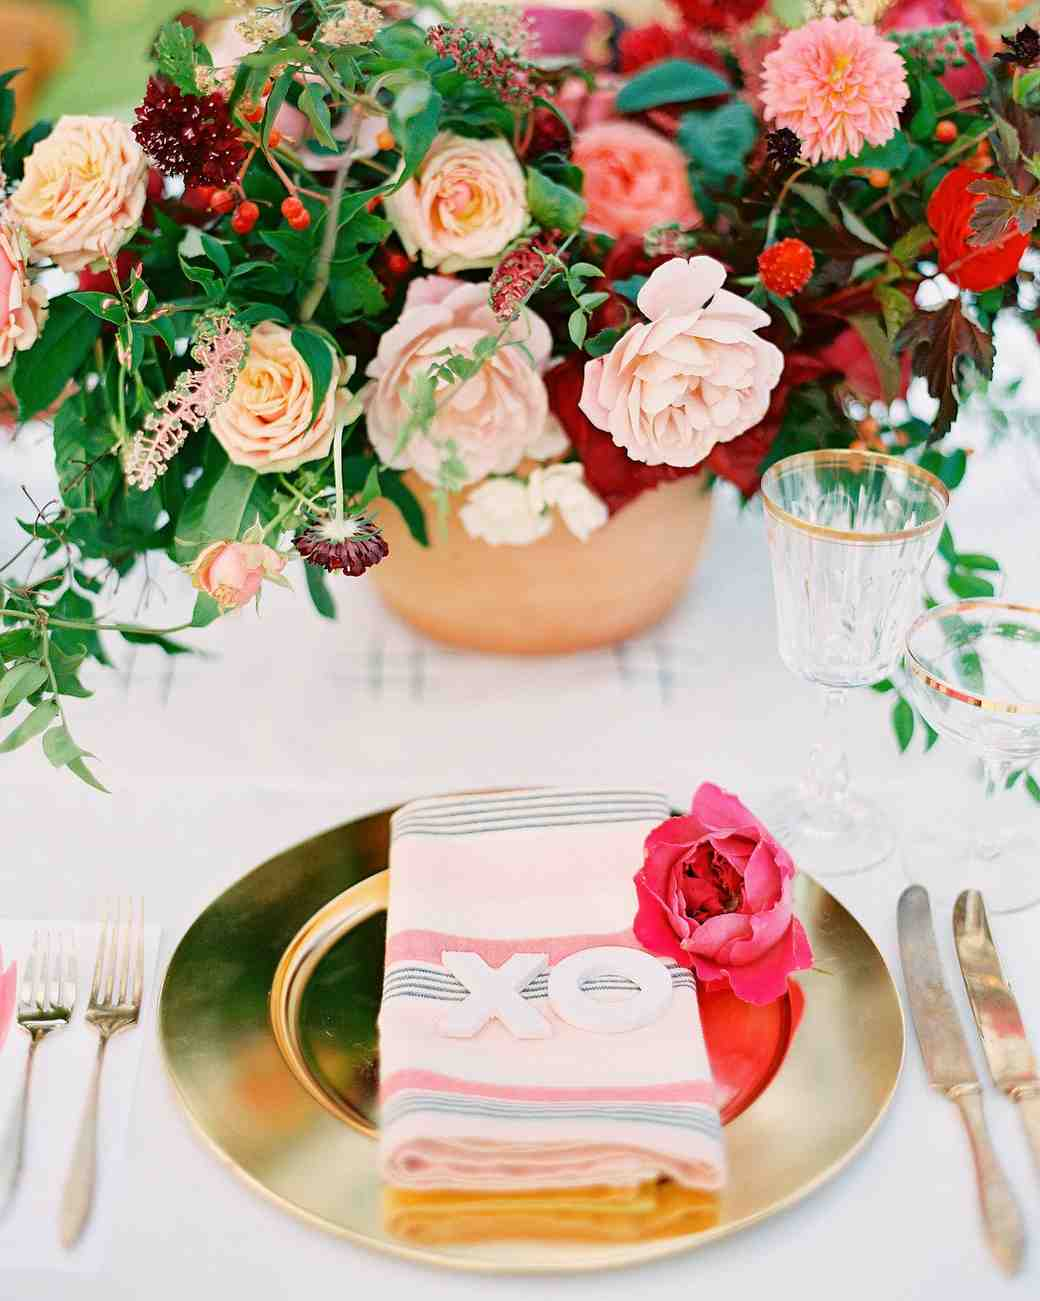 Pink and Gold Wedding Decor with Gold Chargers and Rose Centerpieces